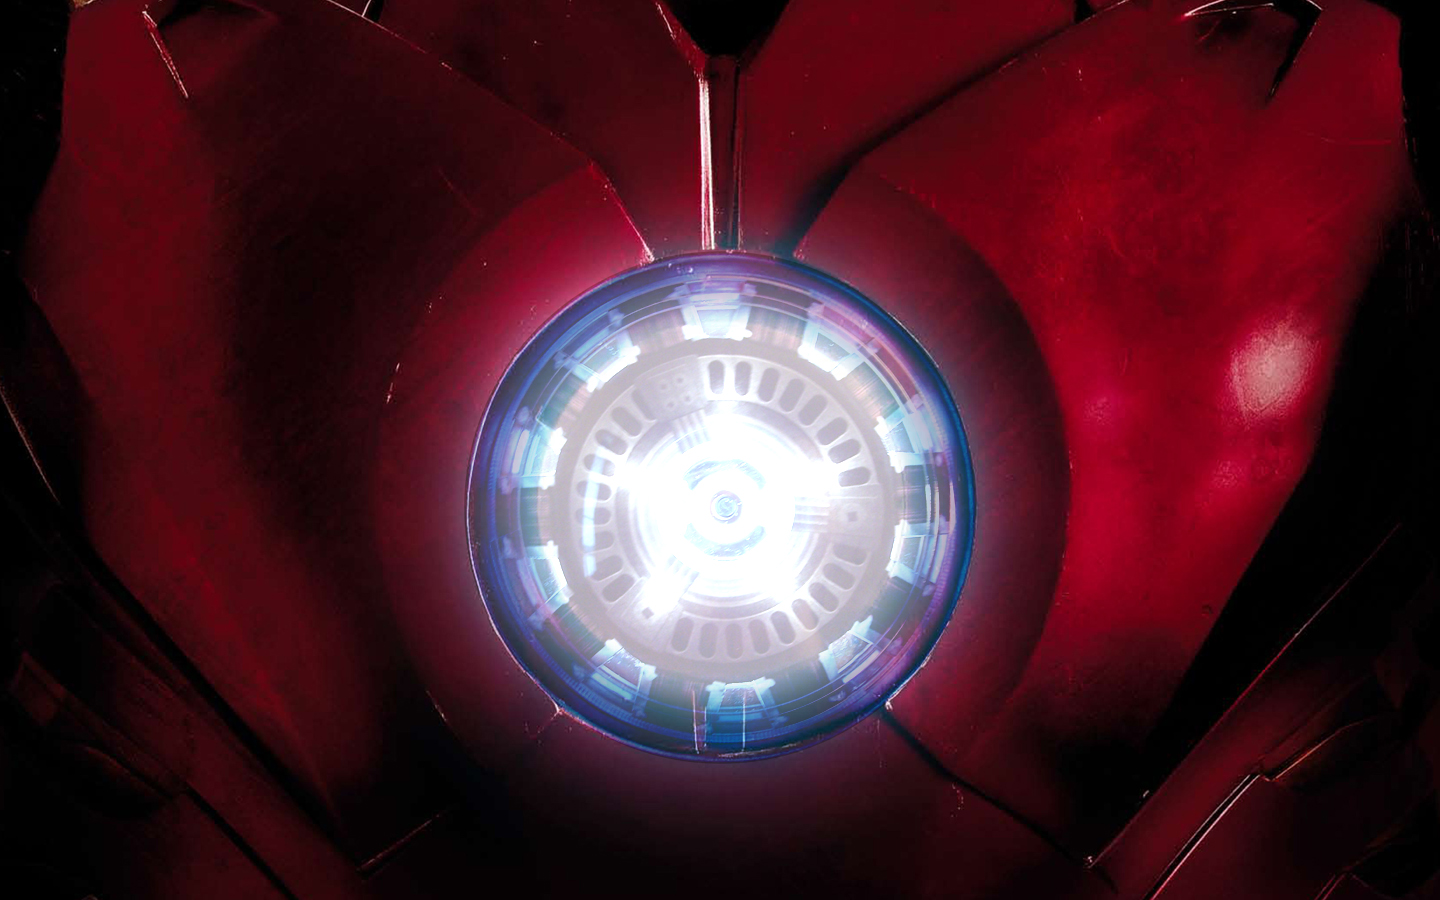 Arc Reactor Wallpapers The Arc Reactor HD Wallpapers The Arc 1440x900